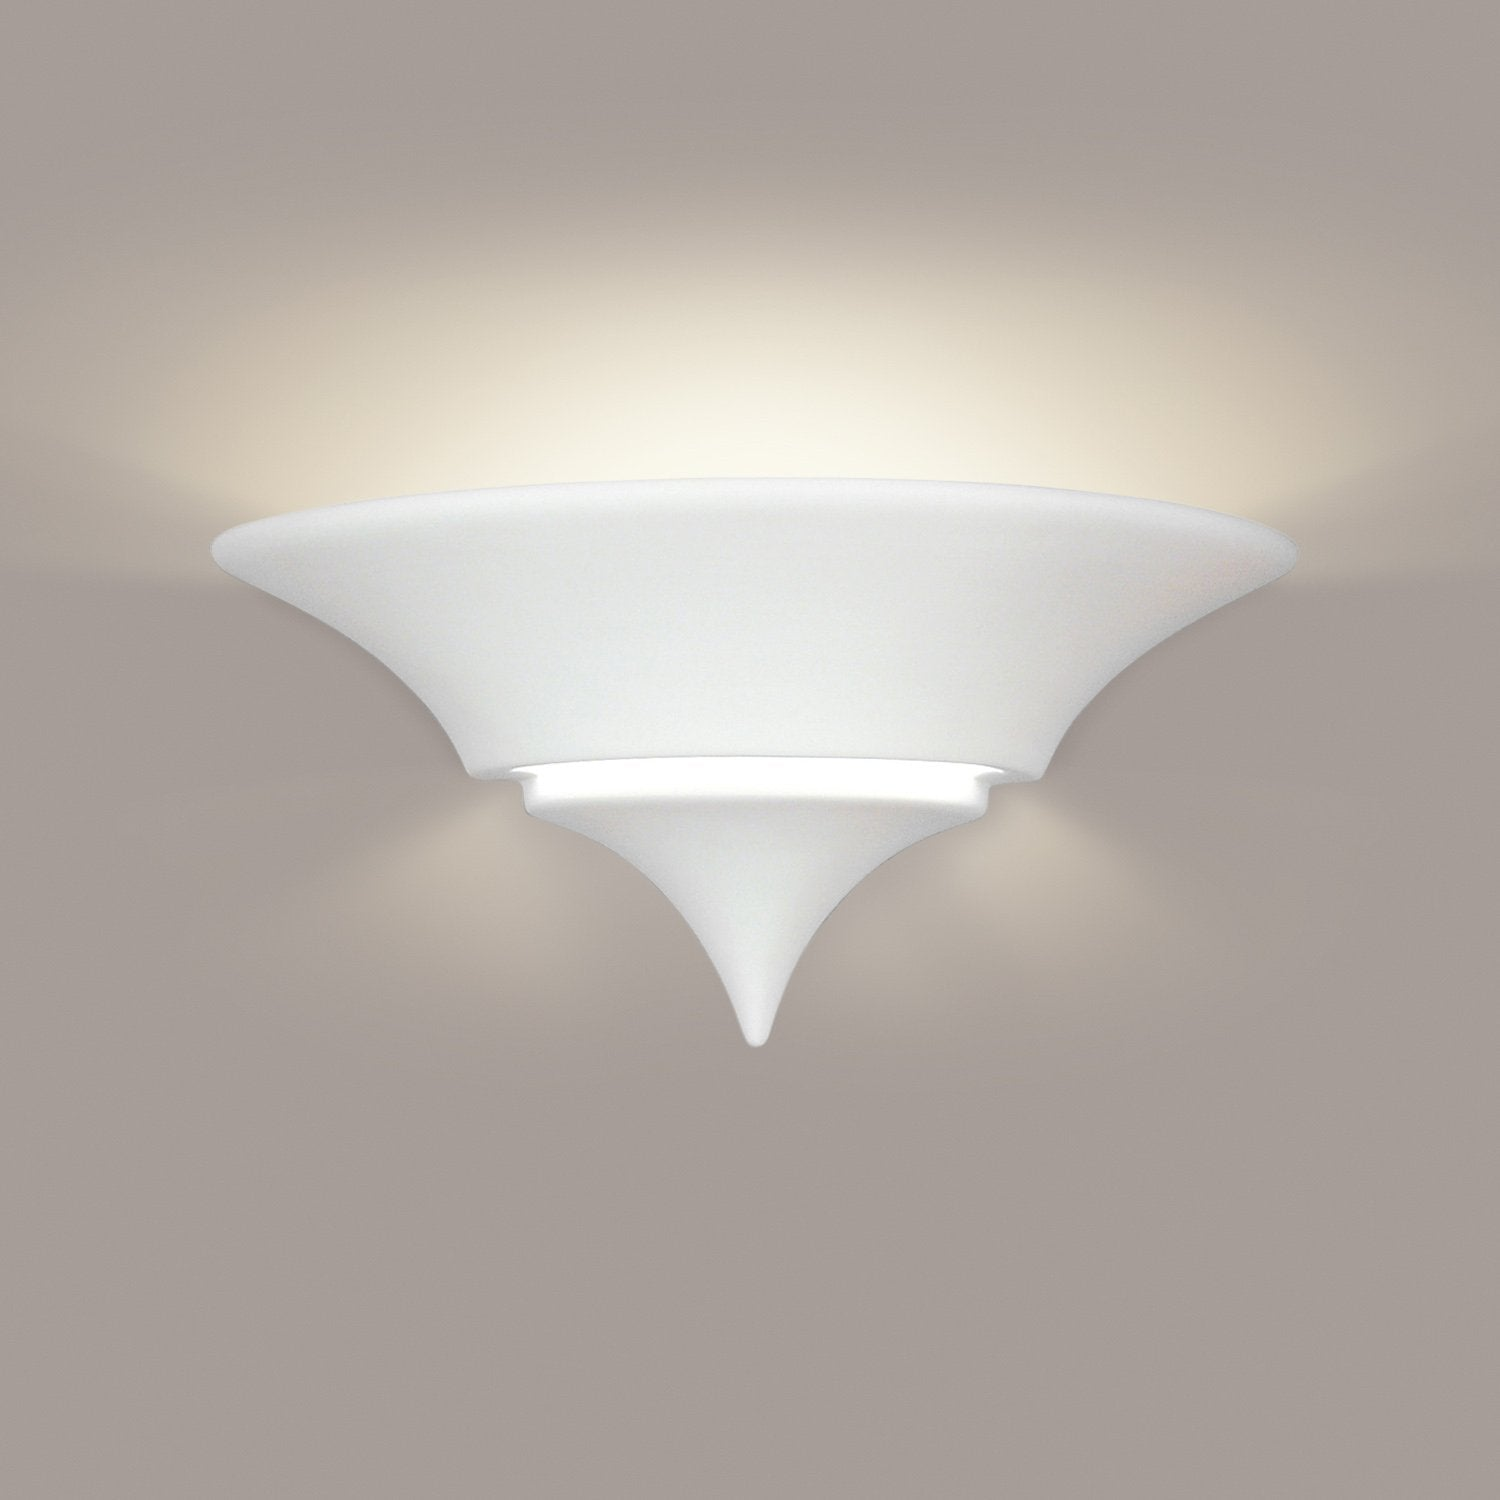 A19 401-GU24-A4 Islands of Light Collection Atlantis Pearl Finish Wall Sconce